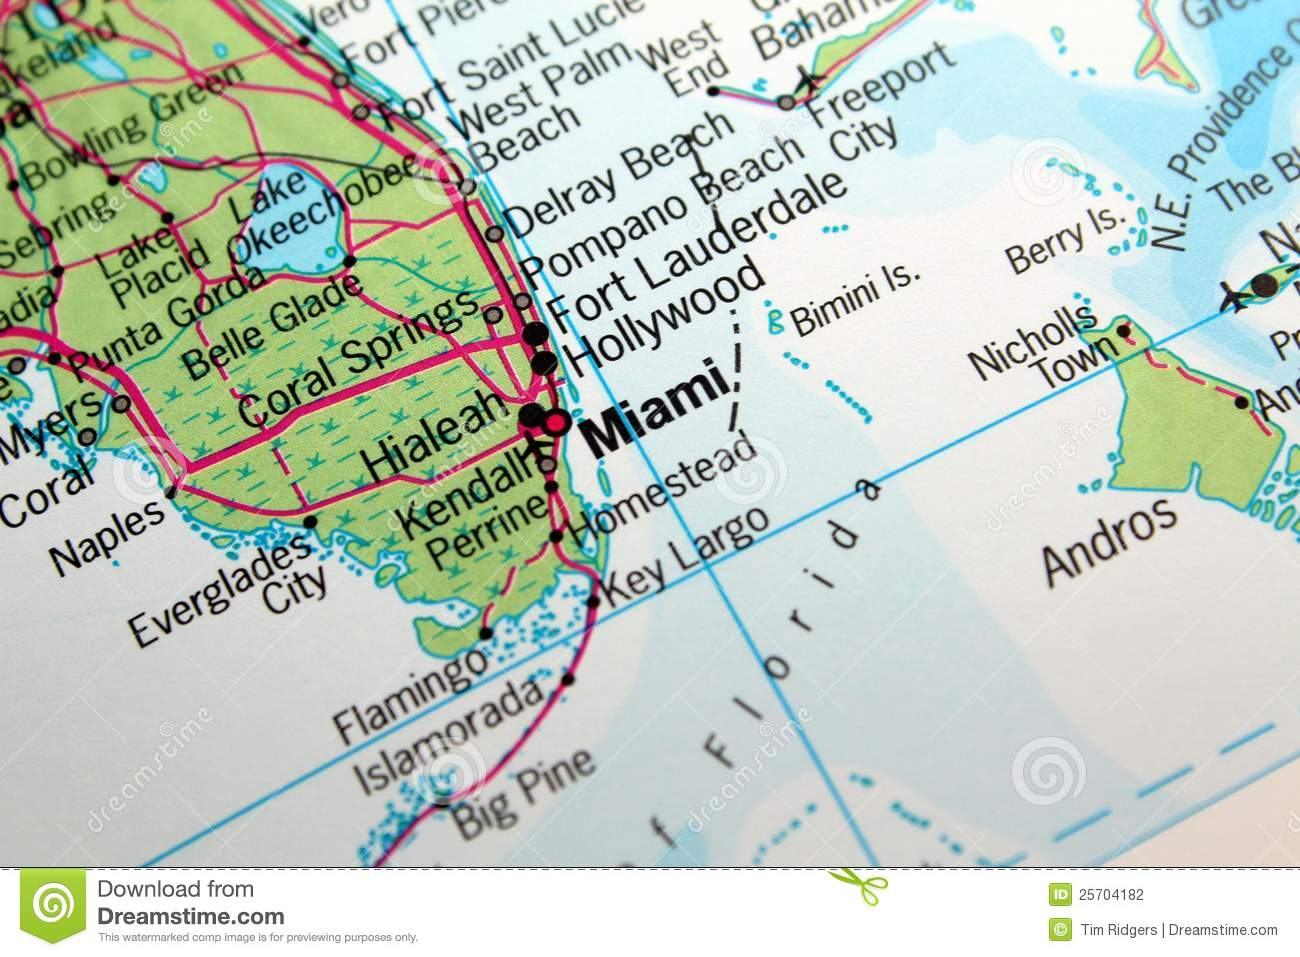 Miami, Florida map stock photo. Image of atlas, geography - 25704182